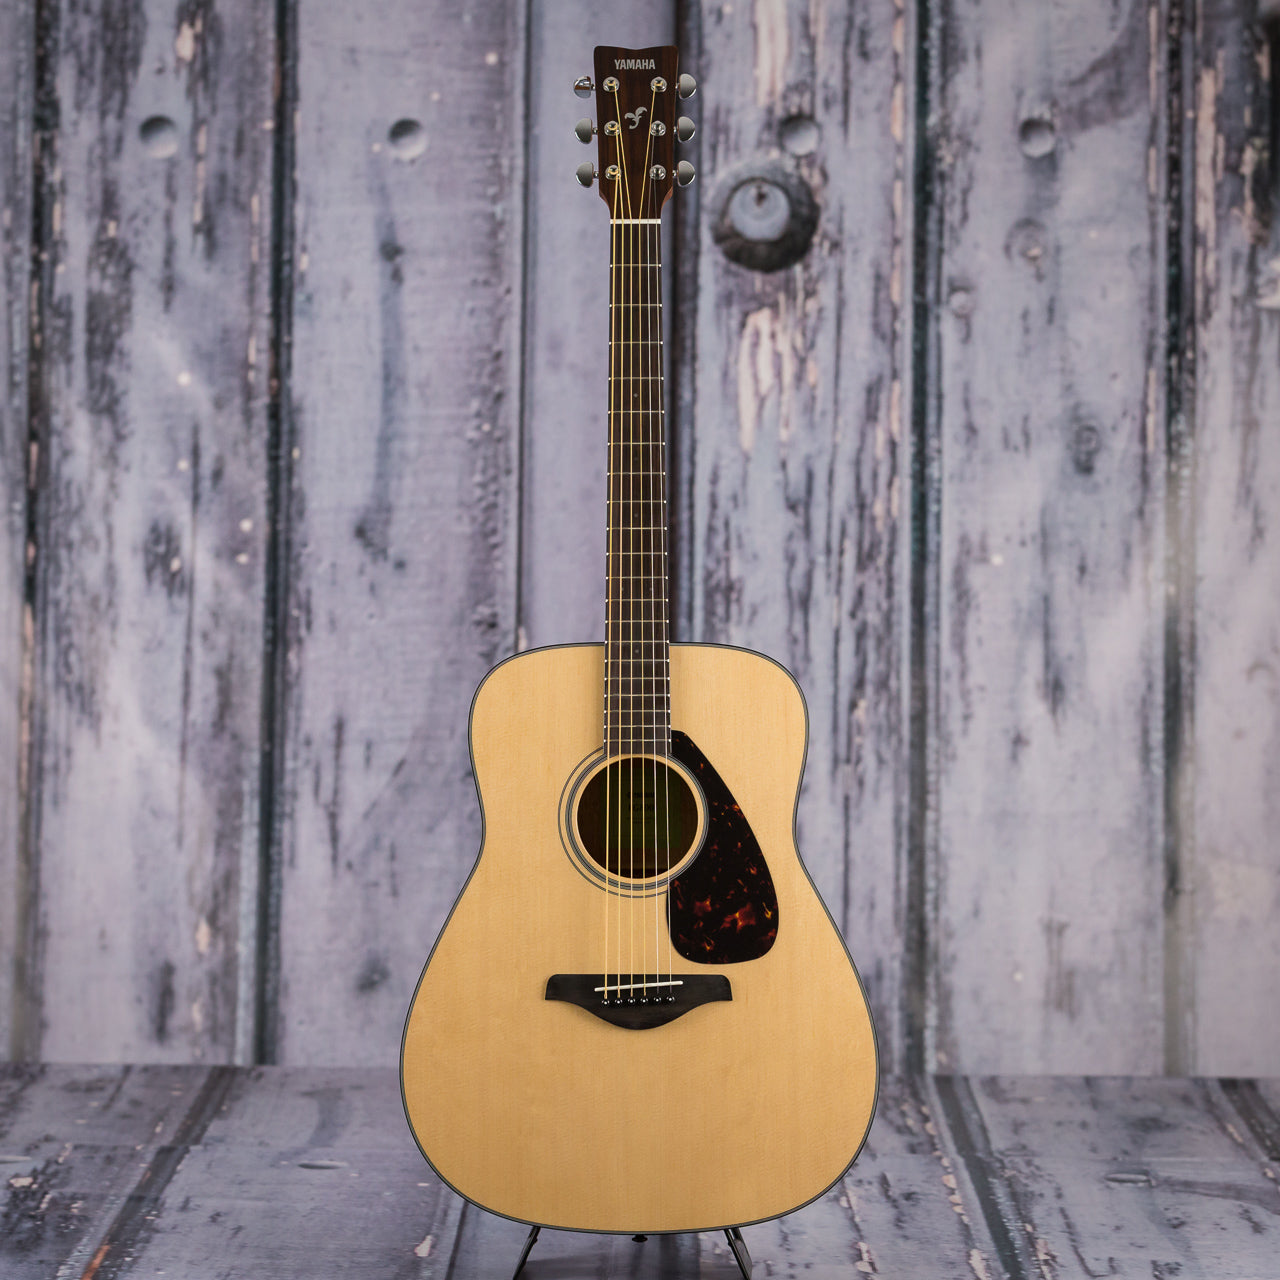 Yamaha Gigmaker Deluxe Fg800 Acoustic Guitar Package For Sale